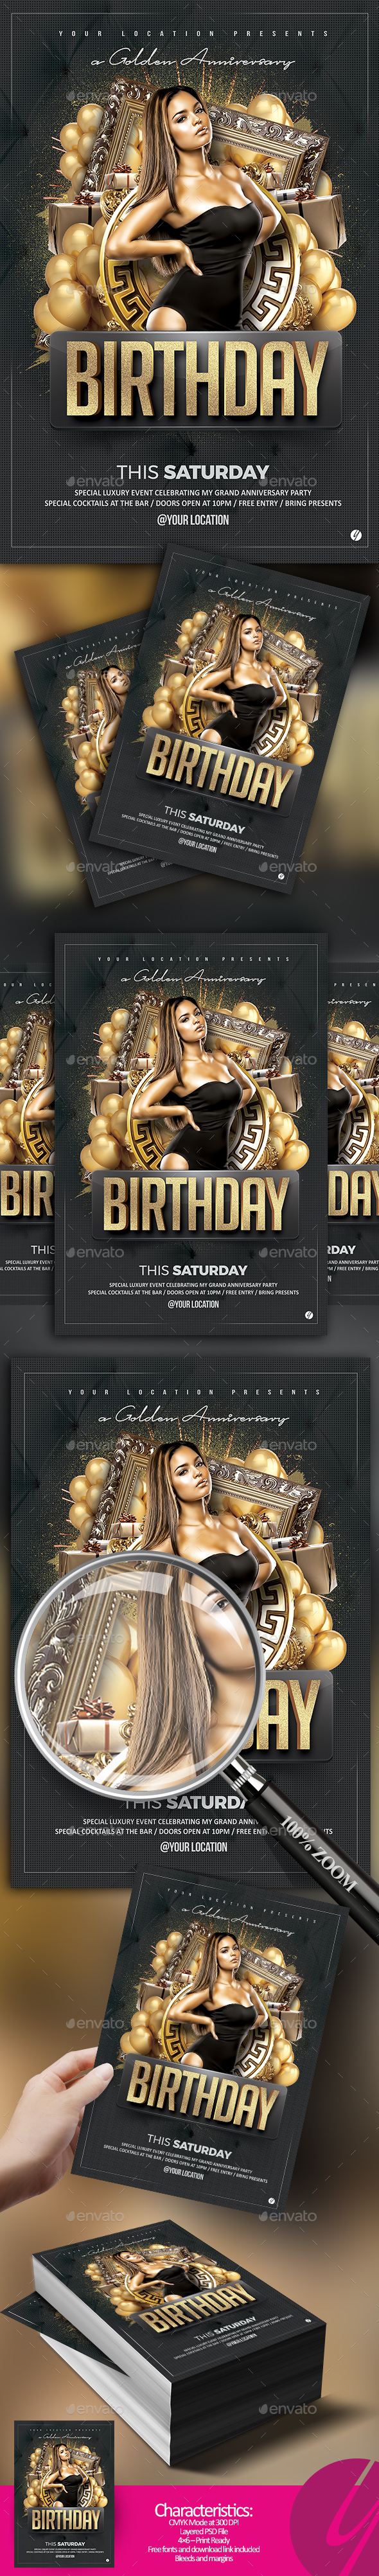 Birthday Anniversary Flyer - Clubs & Parties Events